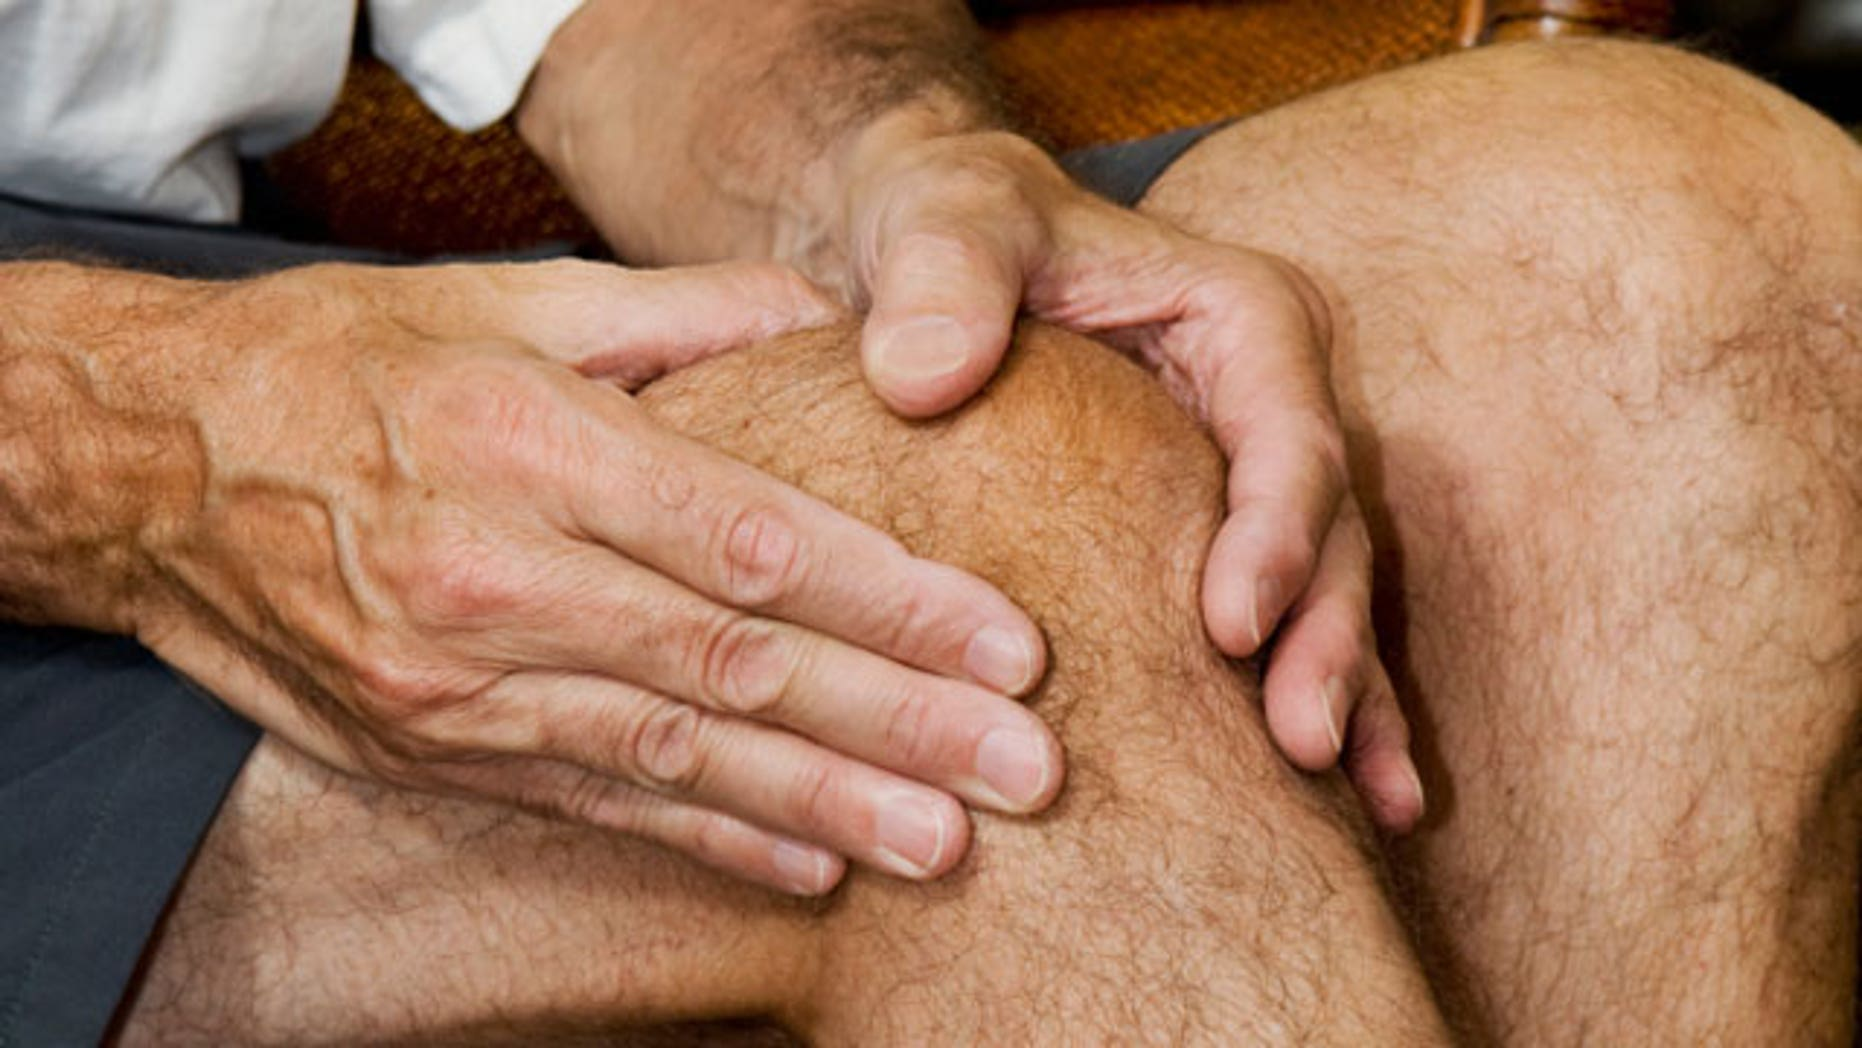 The fabella is a small bone in the tendon behind the knee.